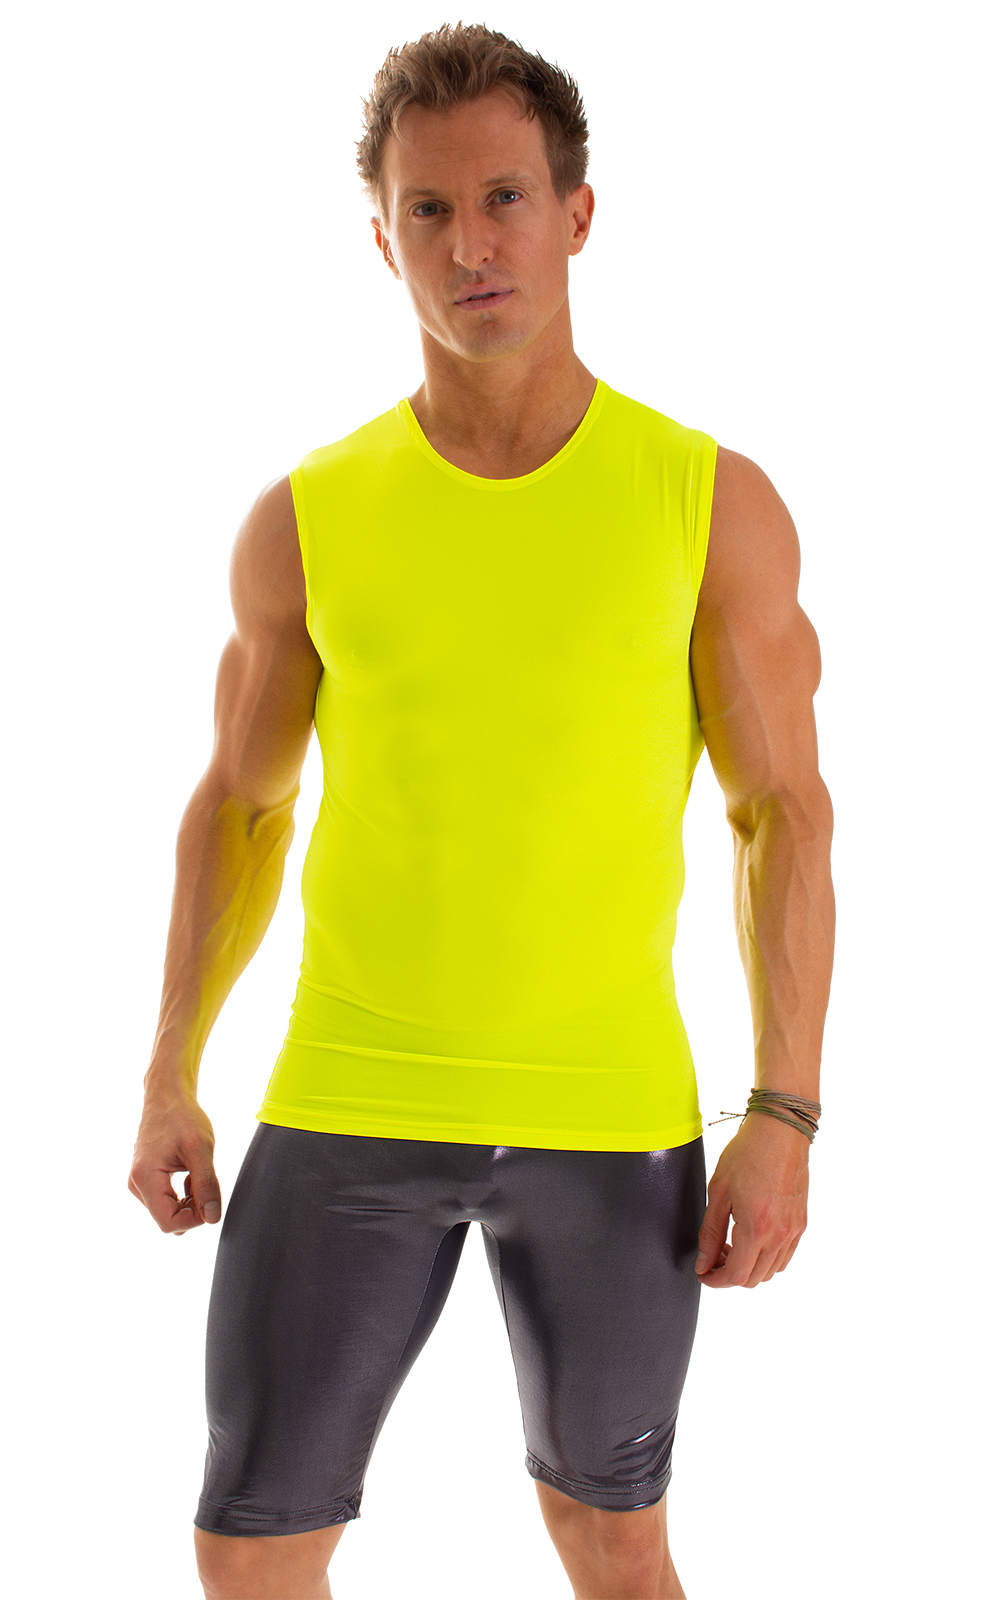 Sleeveless Lycra Muscle Tee in Chartreuse 5